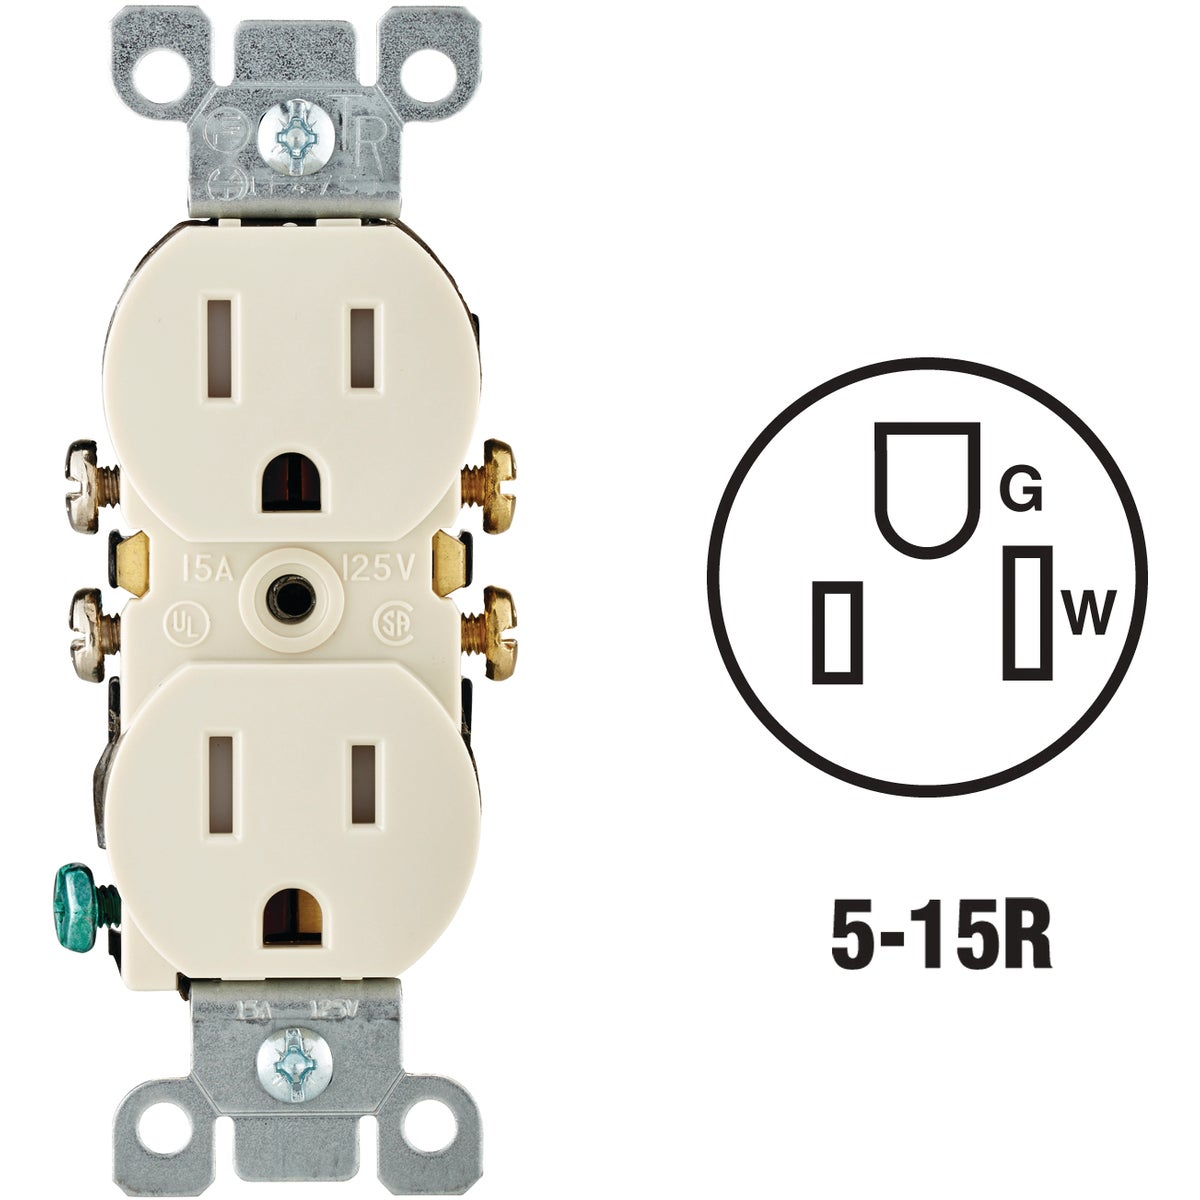 LT ALM TMPR DPLX OUTLET - N04-T5320-00T by Leviton Mfg Co